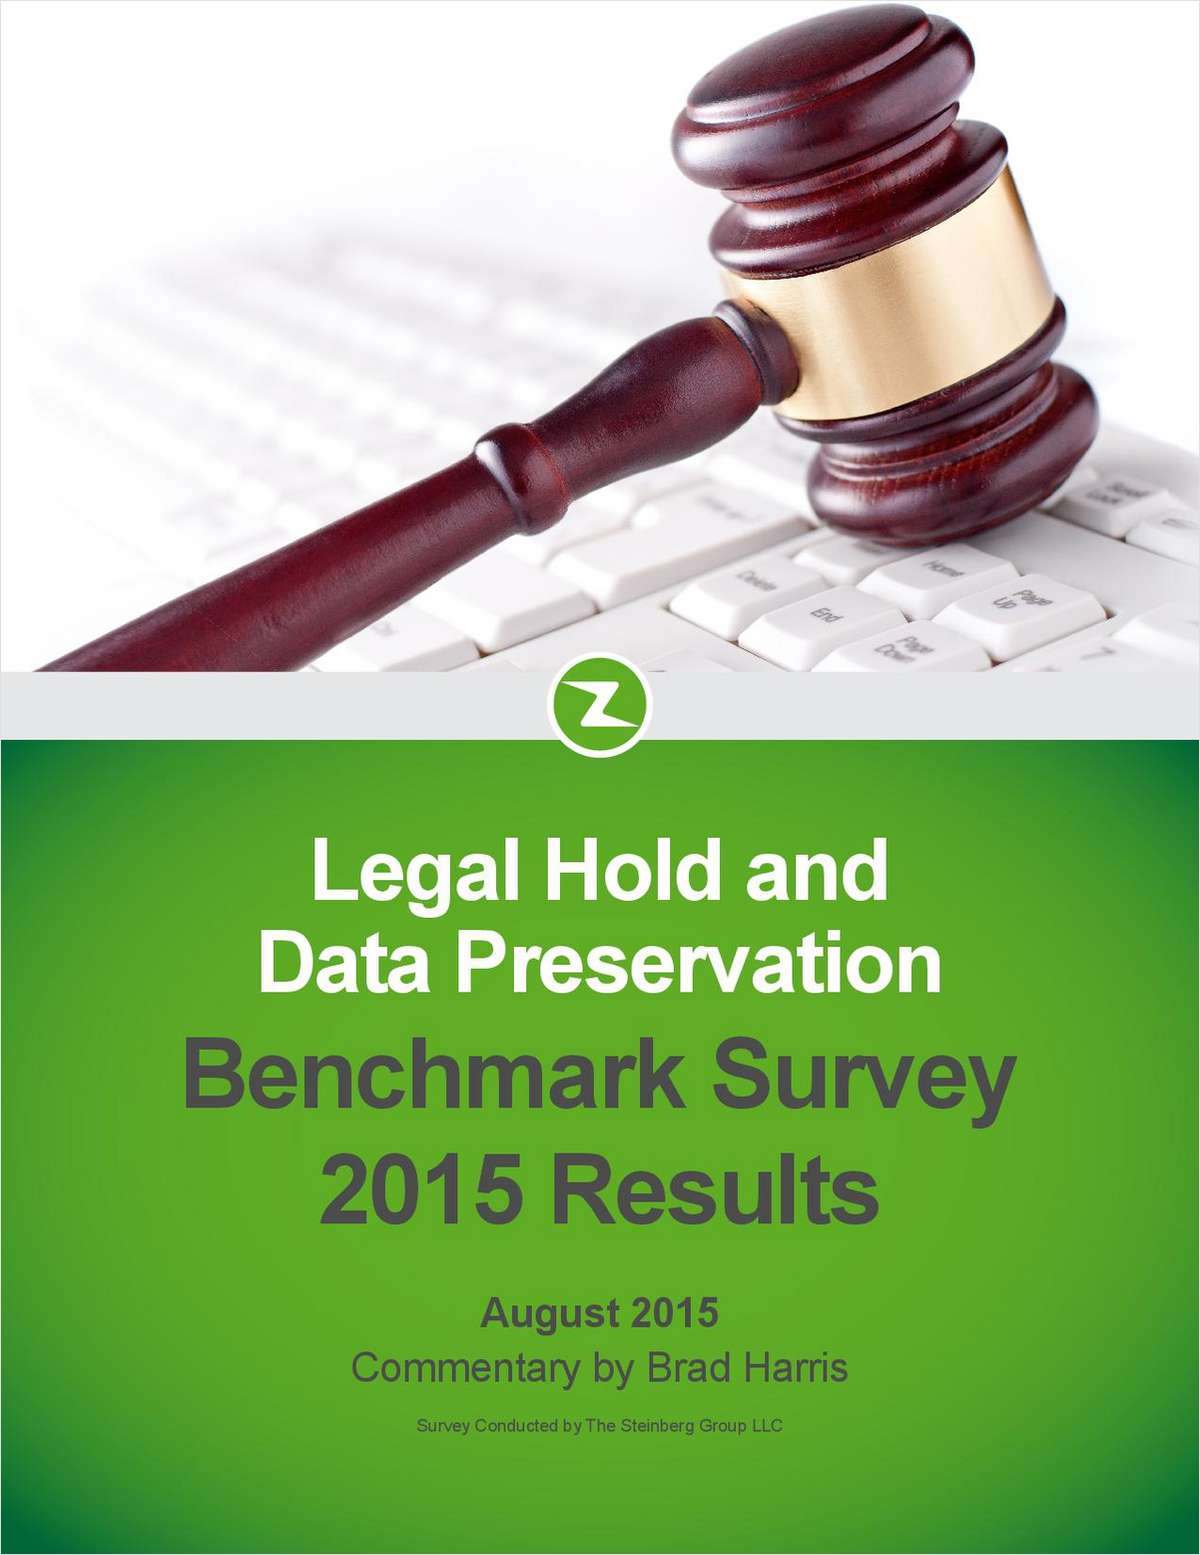 Third Annual Legal Hold and Data Preservation Benchmark Survey Report 2015 Results